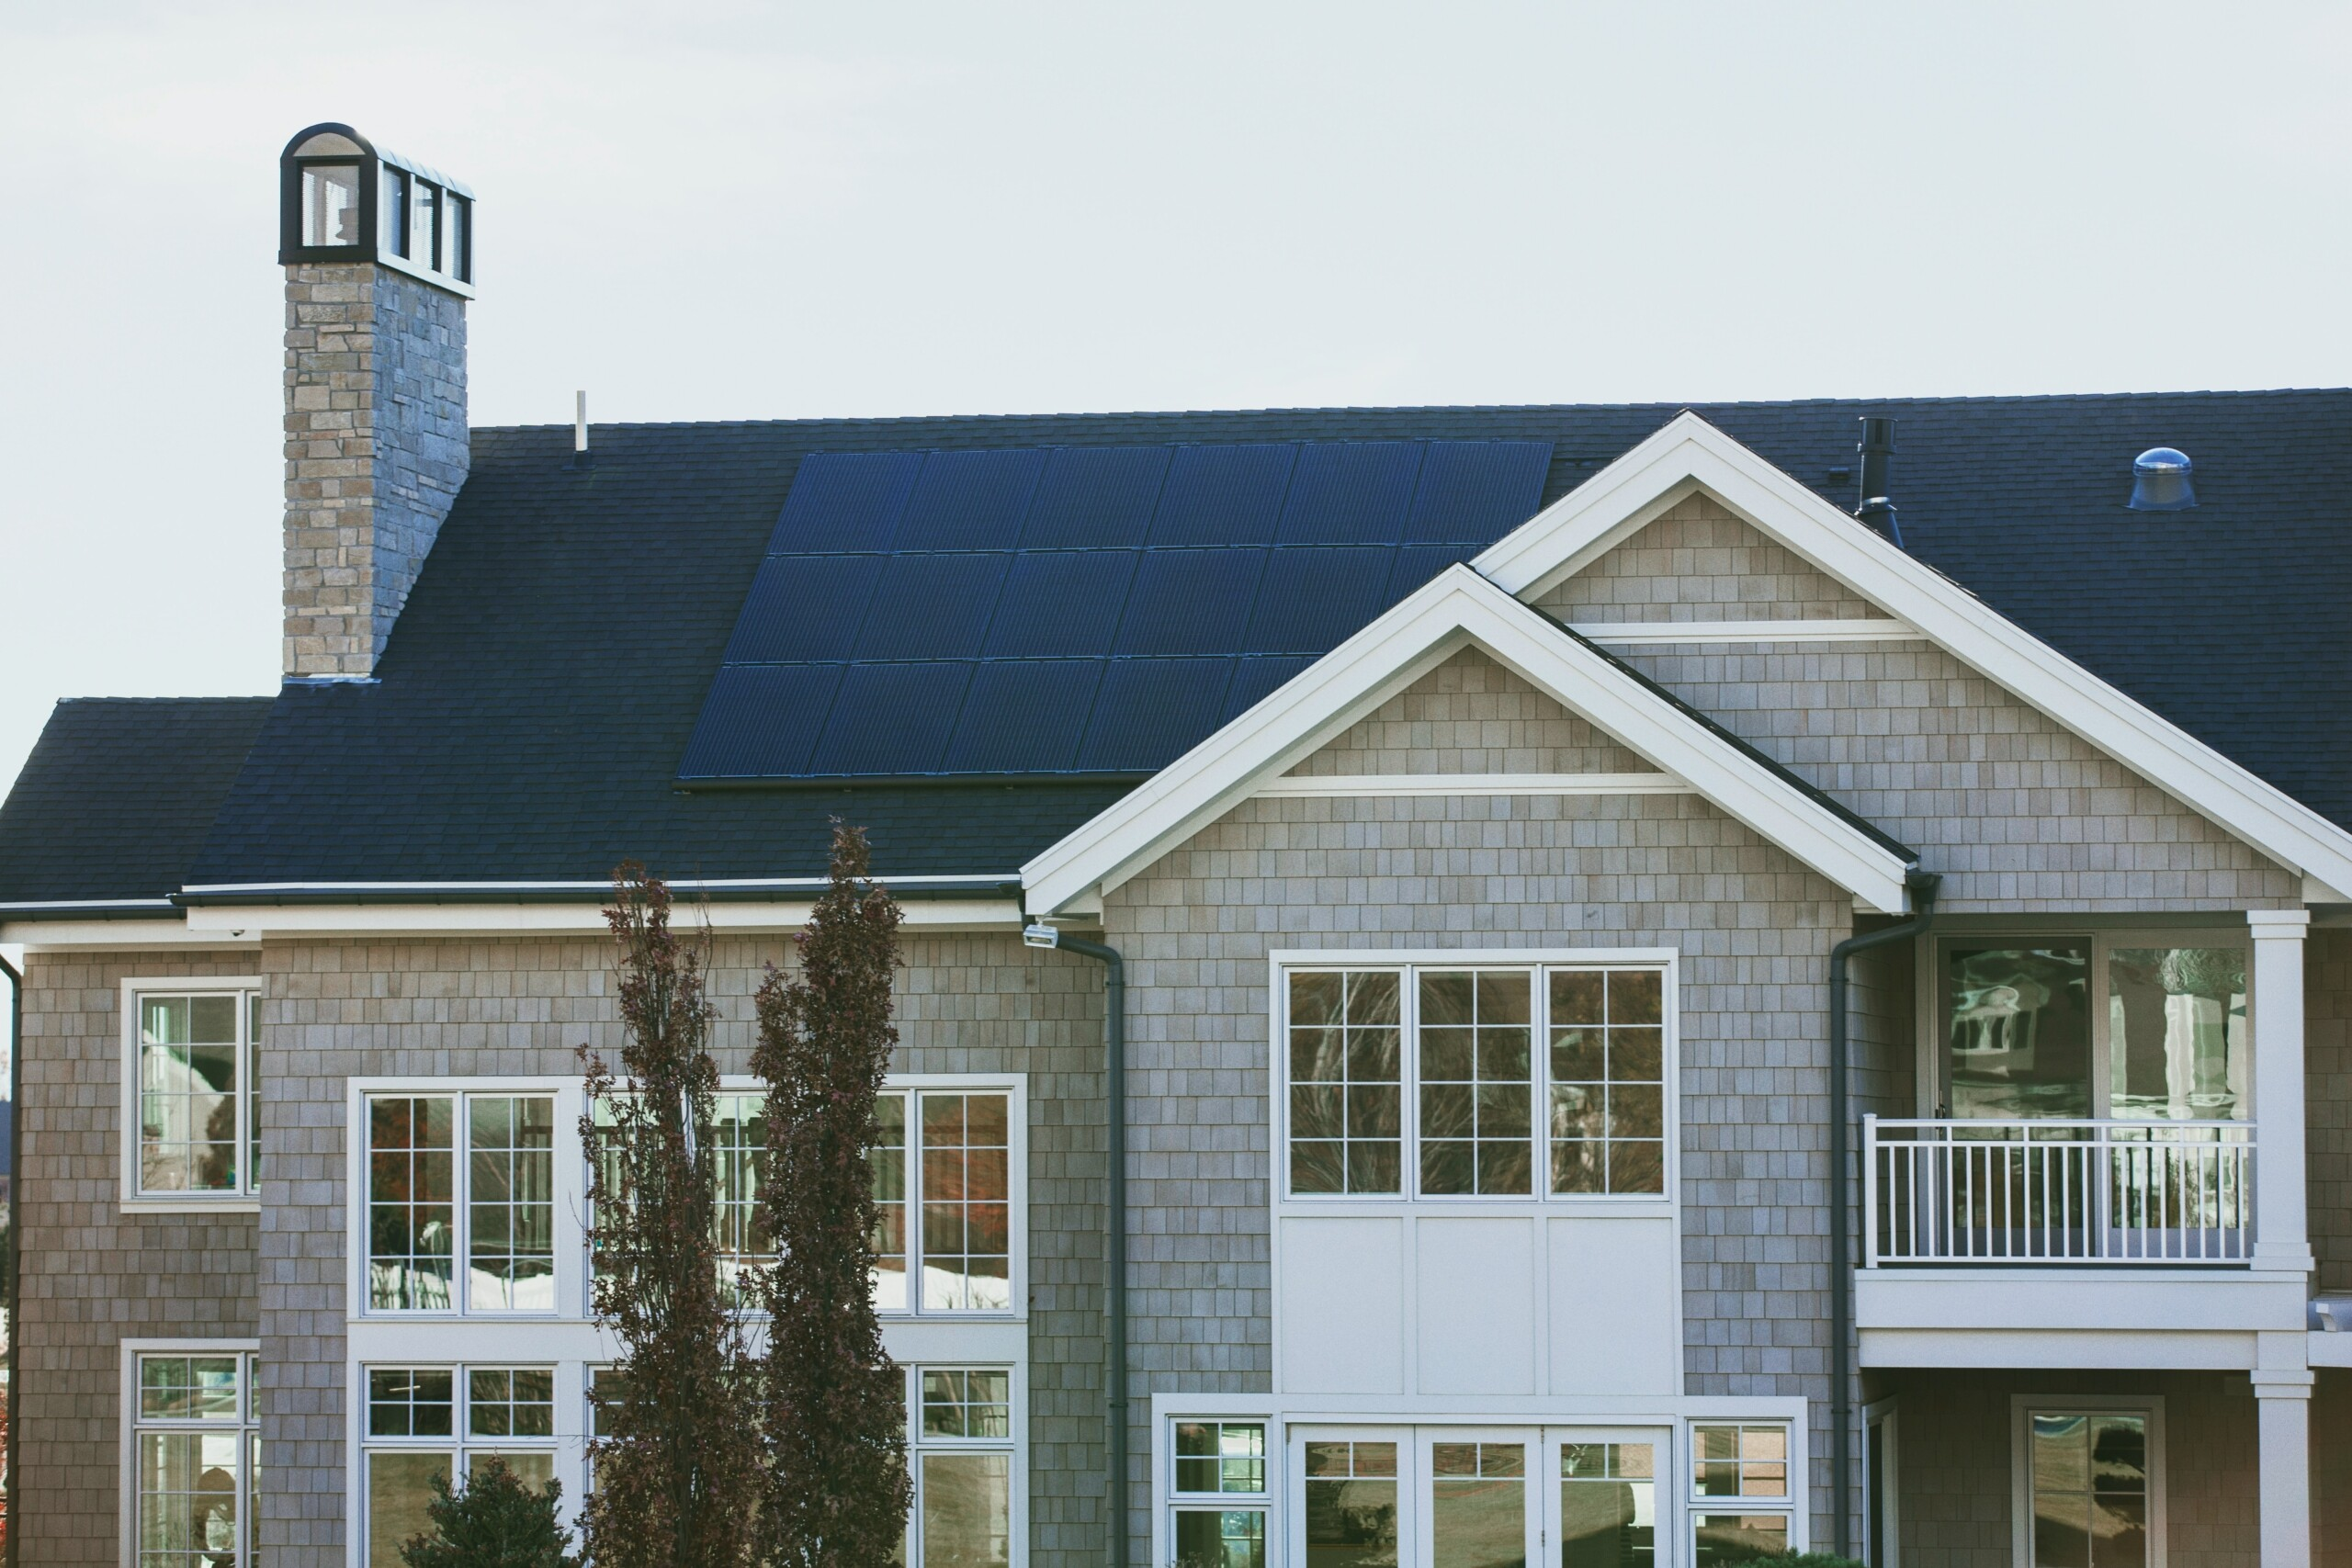 How to Properly Maintain & Care for Solar Panels